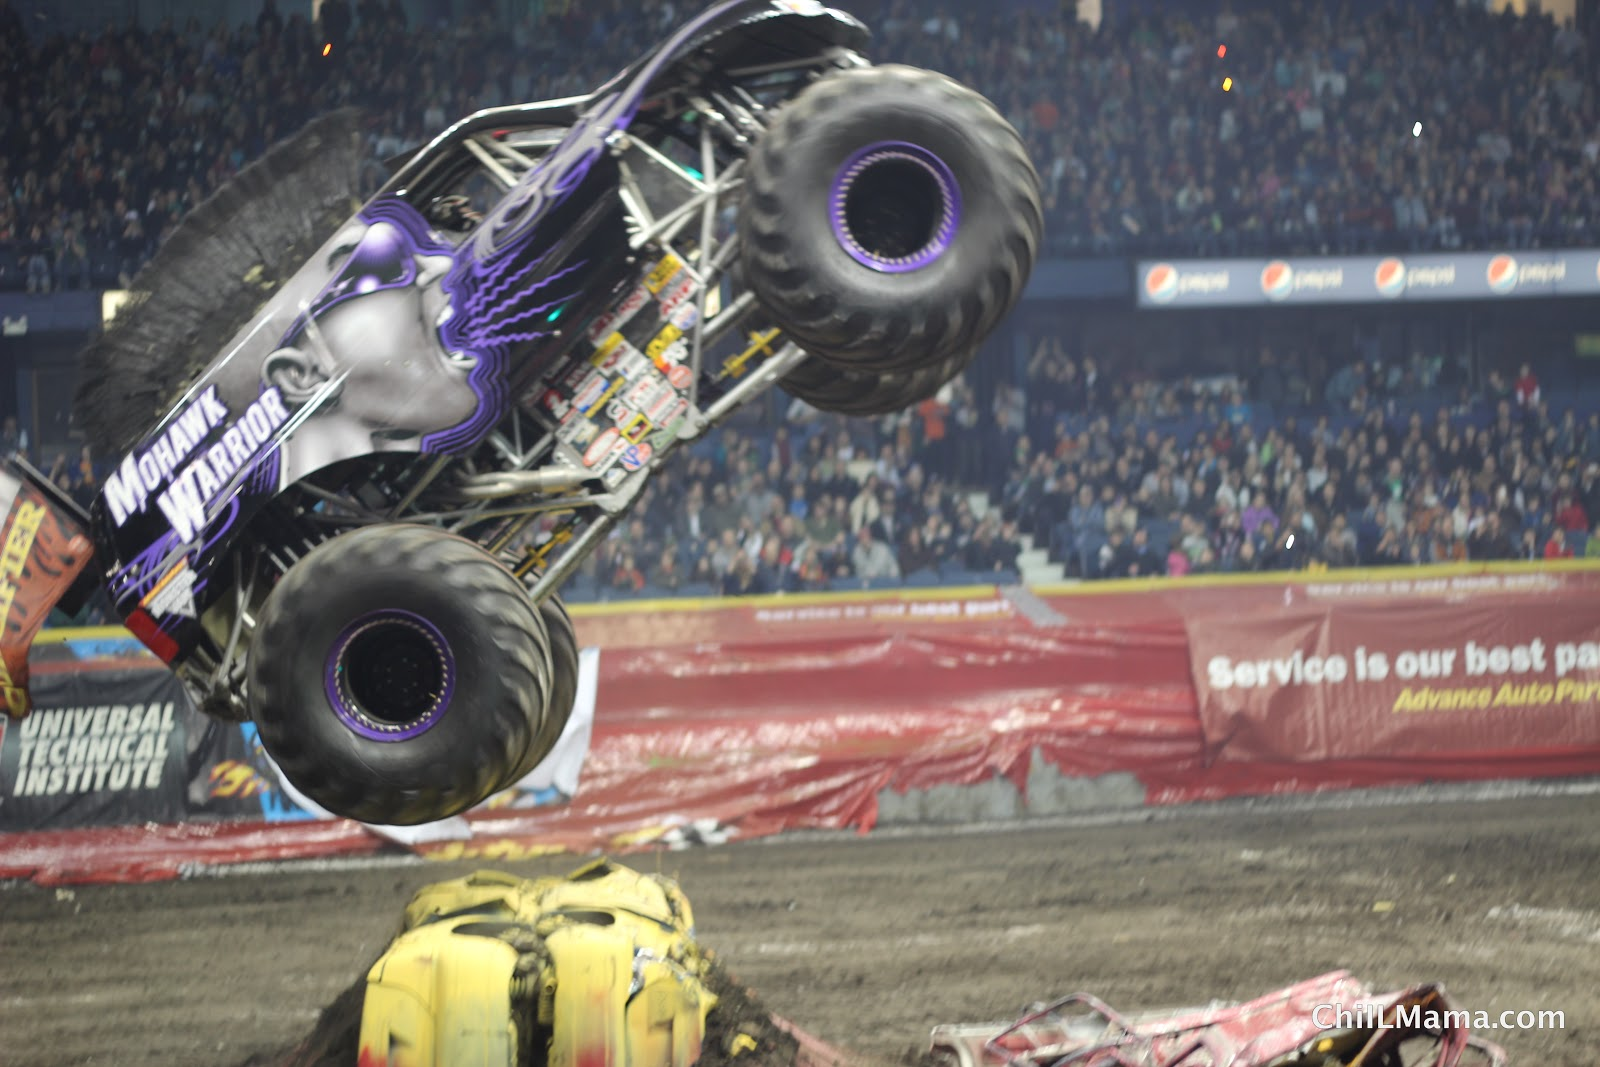 405e95216b Monster Jam stars the biggest performers on four wheels and they're coming  for YOU. Come celebrate Monster Jam's 30th anniversary of Grave Digger!